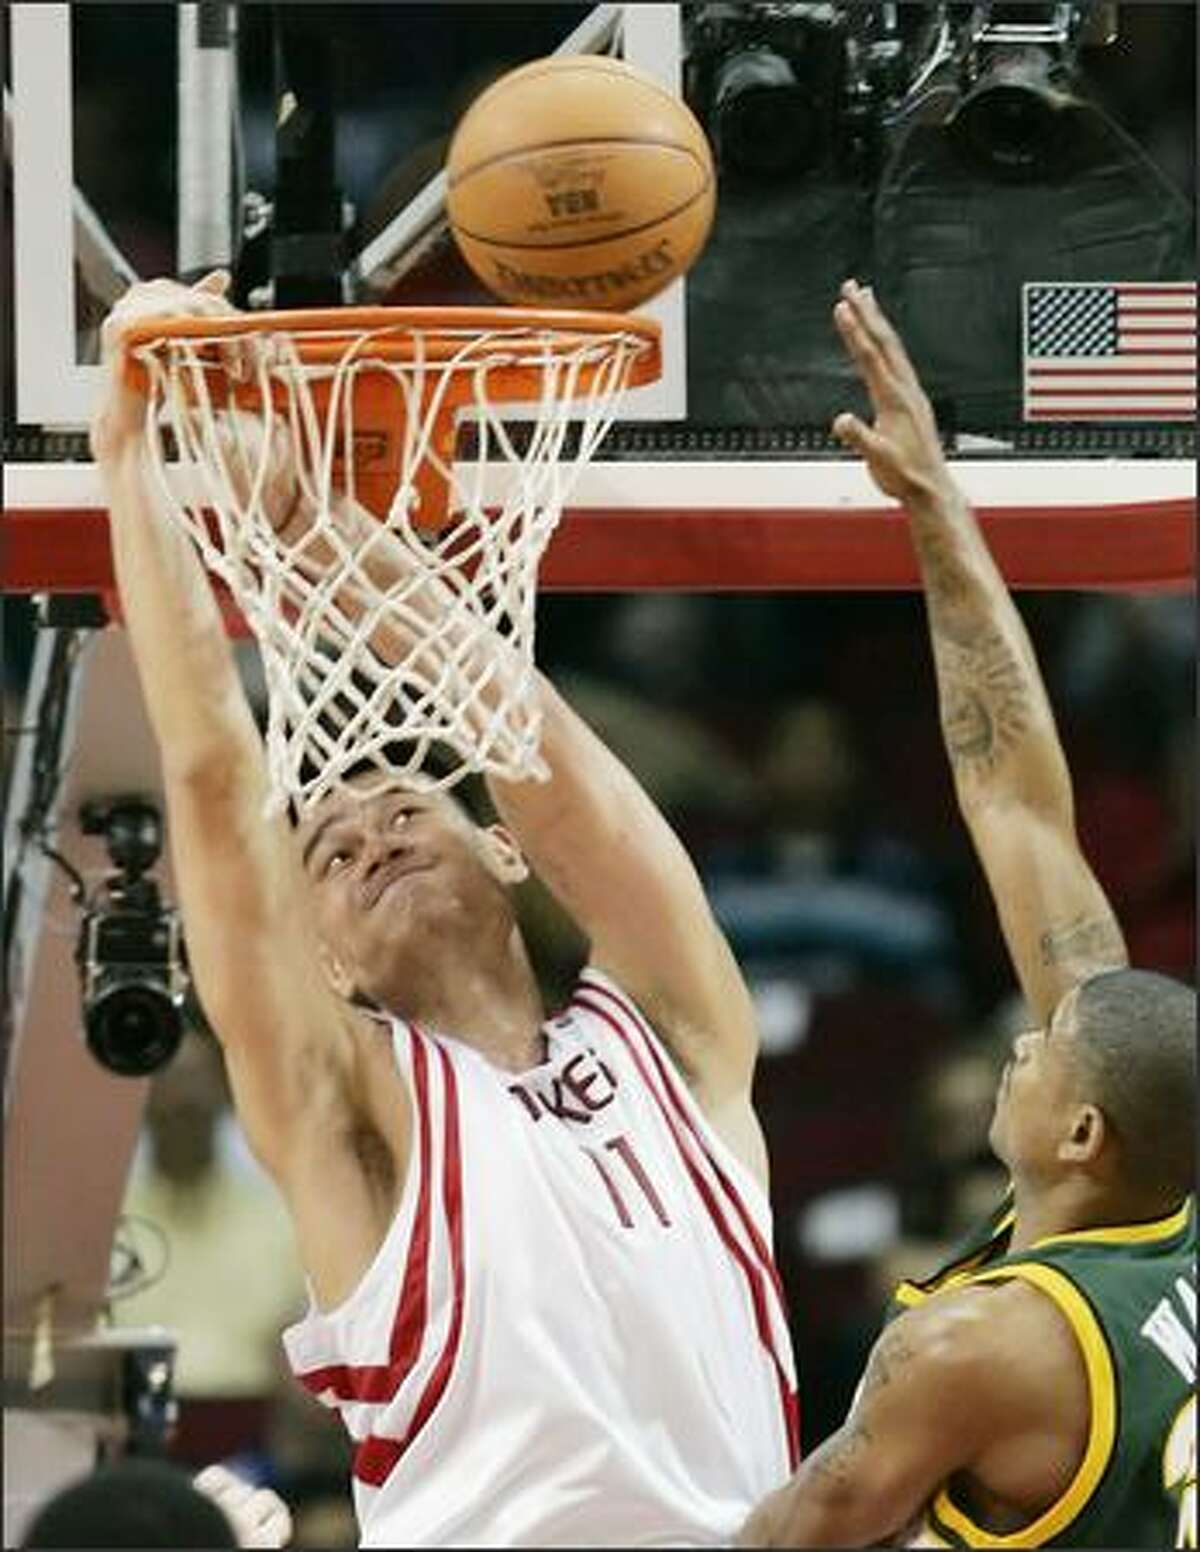 Rockets center Yao Ming had his way against the Sonics, finishing with 29 points, 10 rebounds, five assists and three steals.